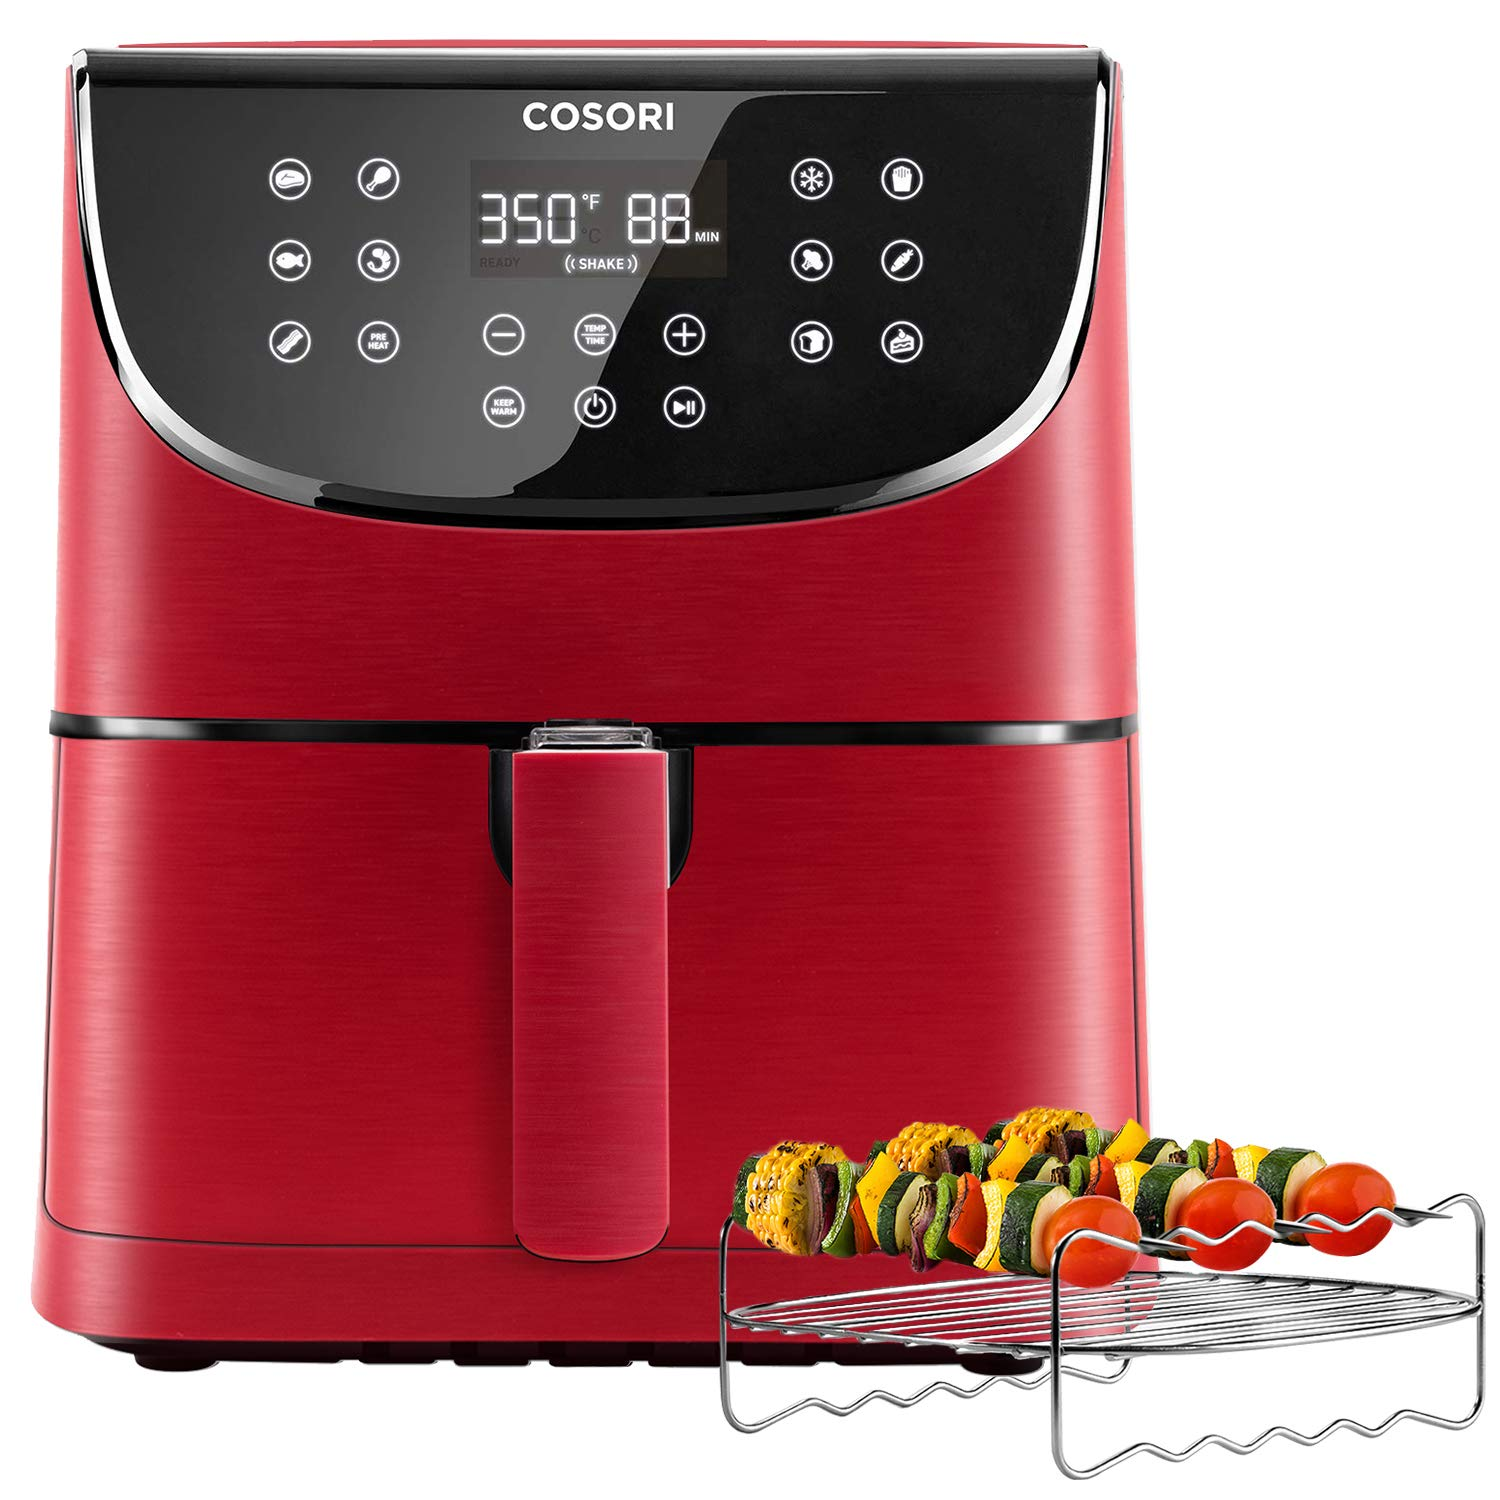 COSORI Air Fryer(100 Recipes, Rack & 4 Skewers),3.7QT Electric Hot Air Fryers Oven Oilless Cooker,11 Presets,Preheat& Shake Reminder, LED Touch Digital Screen,Nonstick Basket,2-Year Warranty,1500W,Red